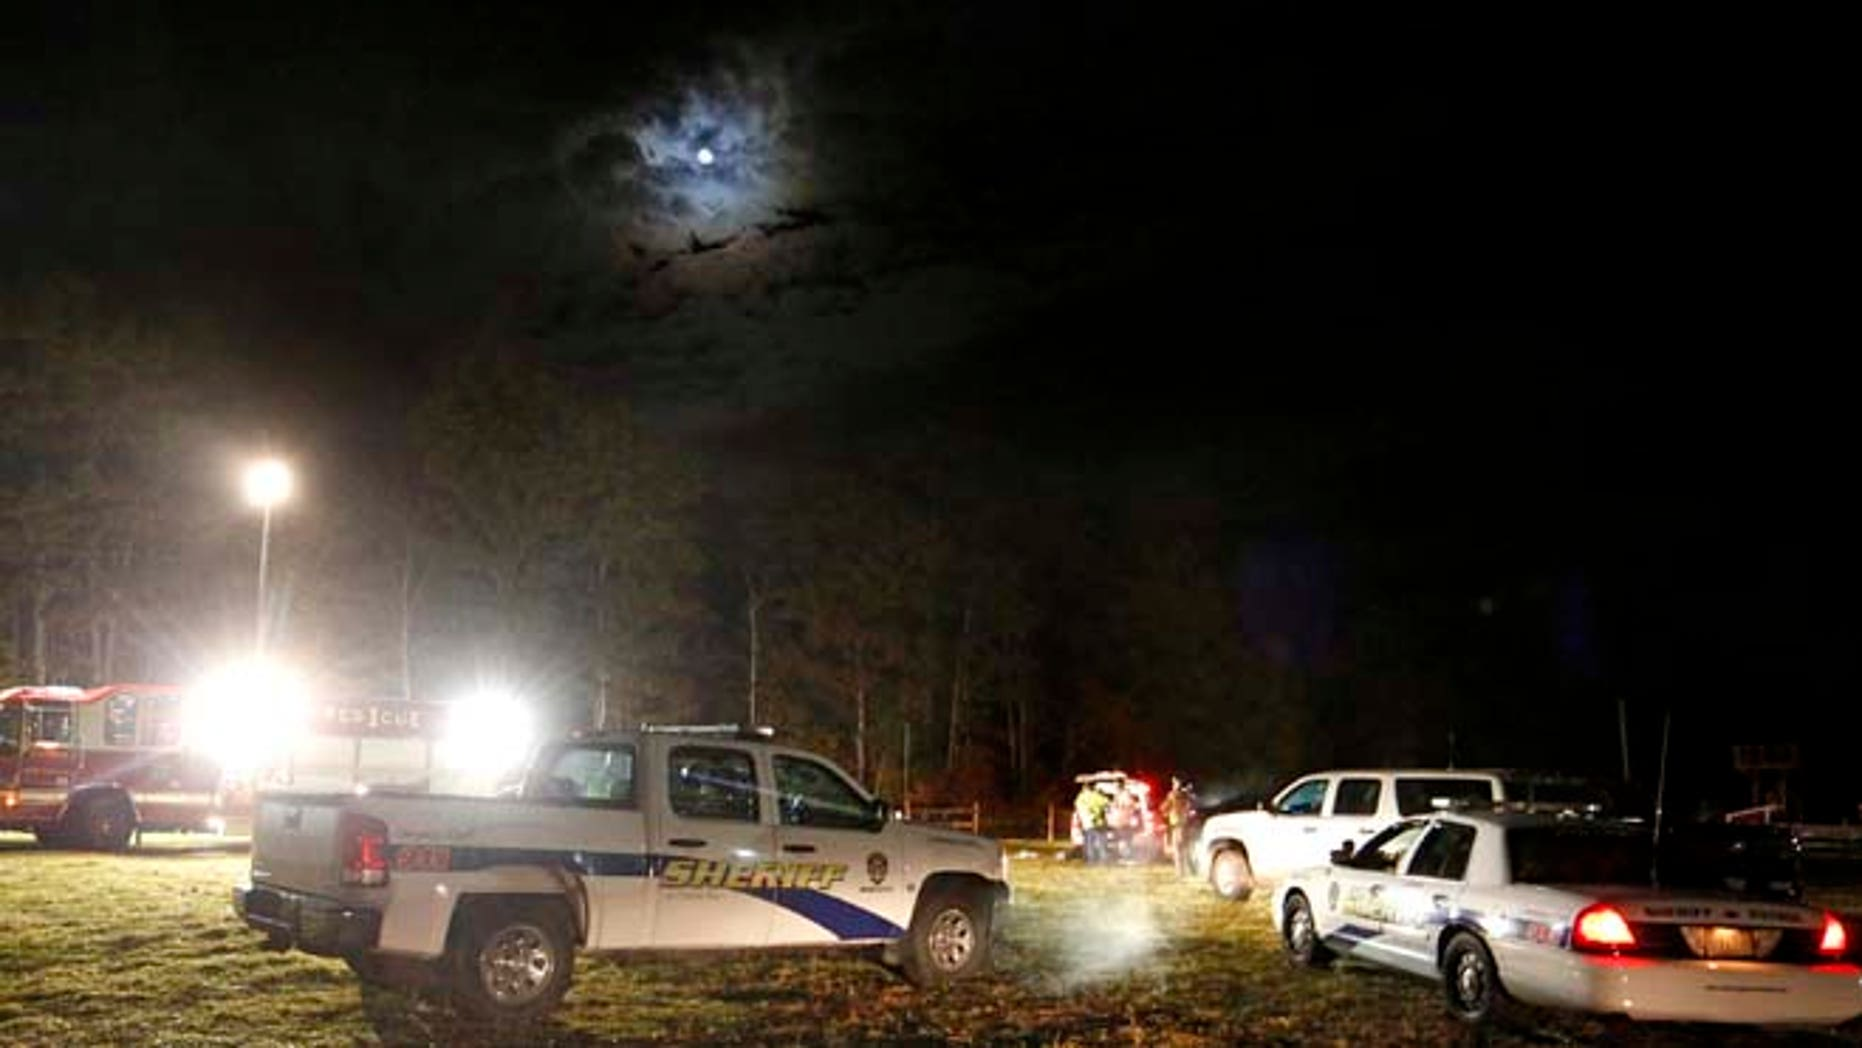 Maine hayride flips over, killing 1, injuring 22 | Fox News